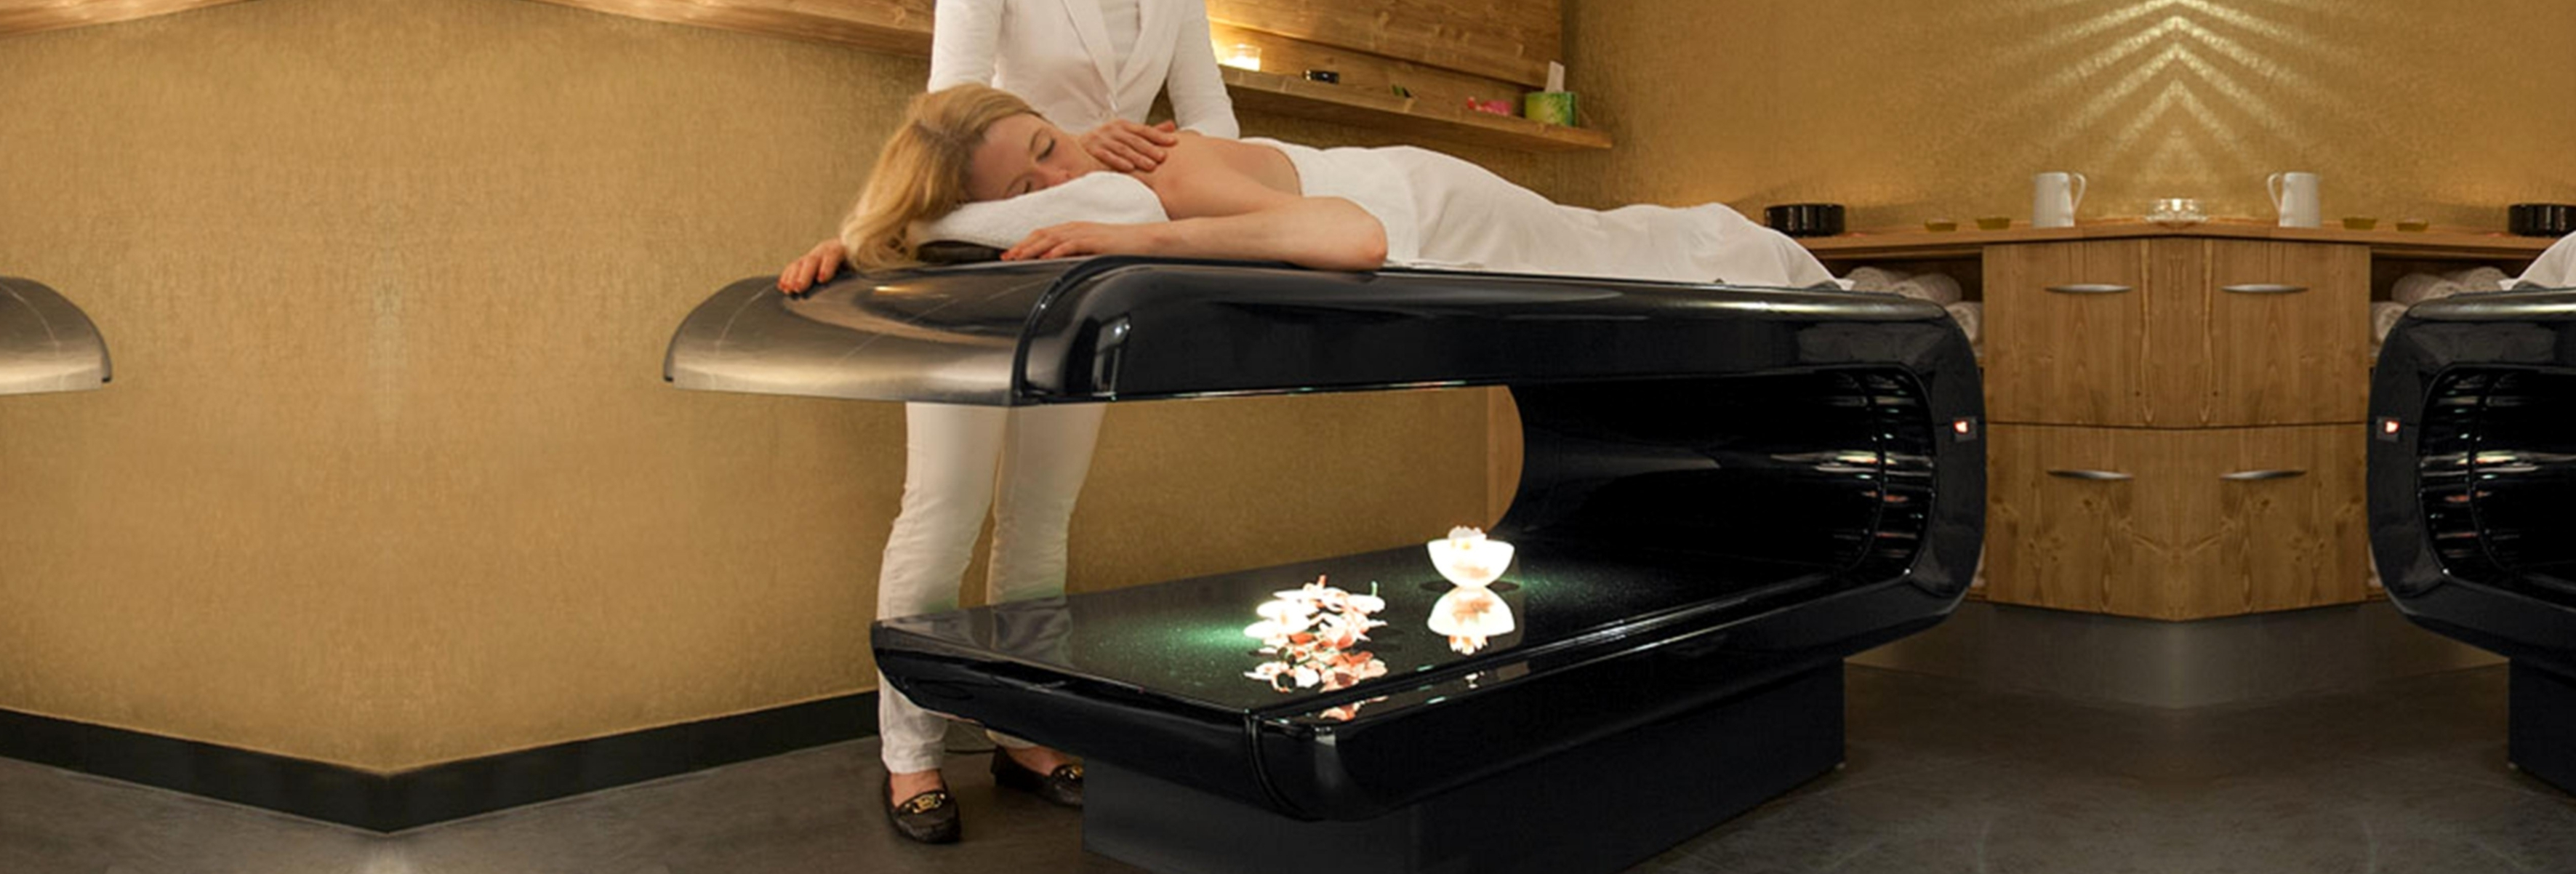 INFRARED HEATED TREATMENT TABLE